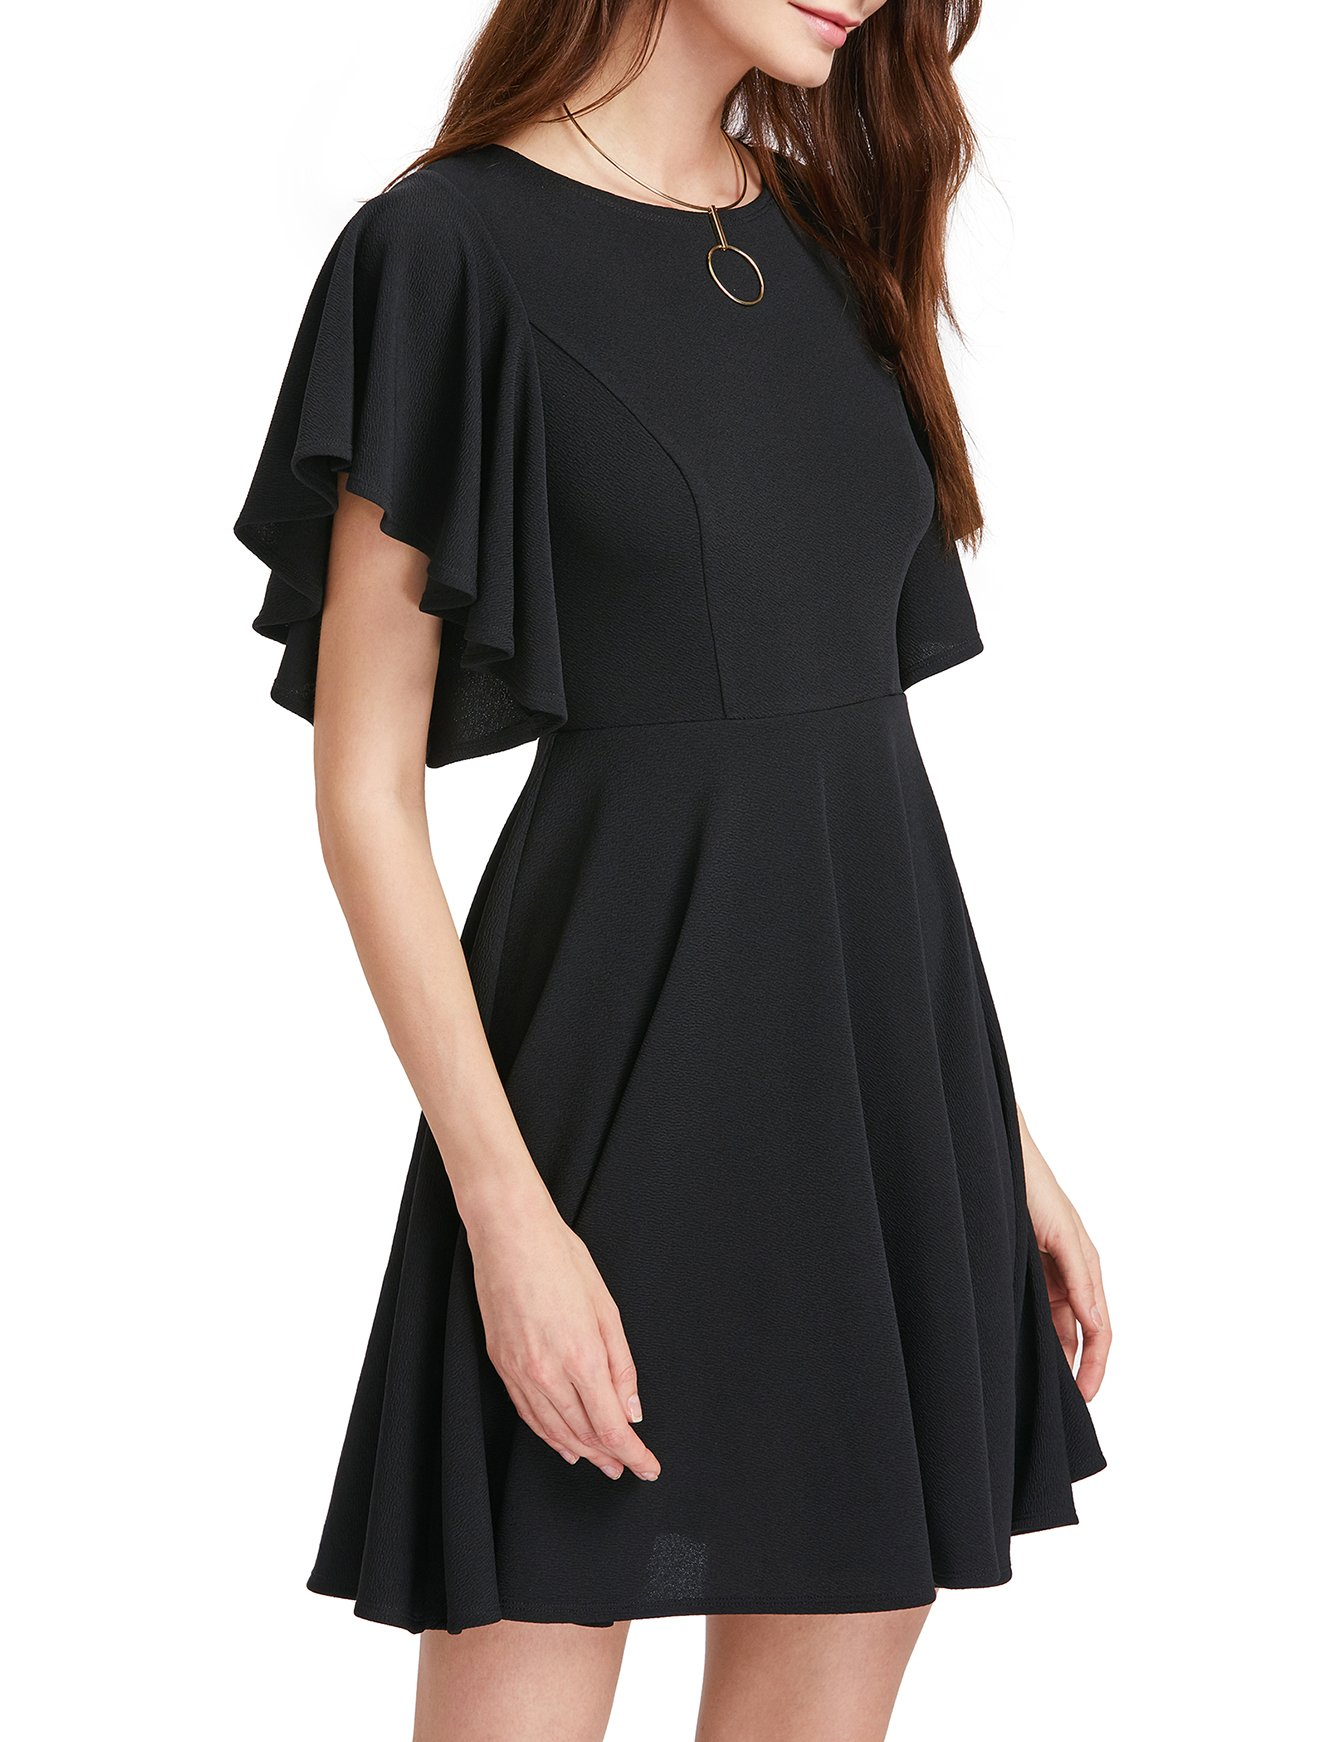 ROMWE Women's Stretchy A Line Swing Flared Skater Cocktail Party Dress Black L by Romwe (Image #3)